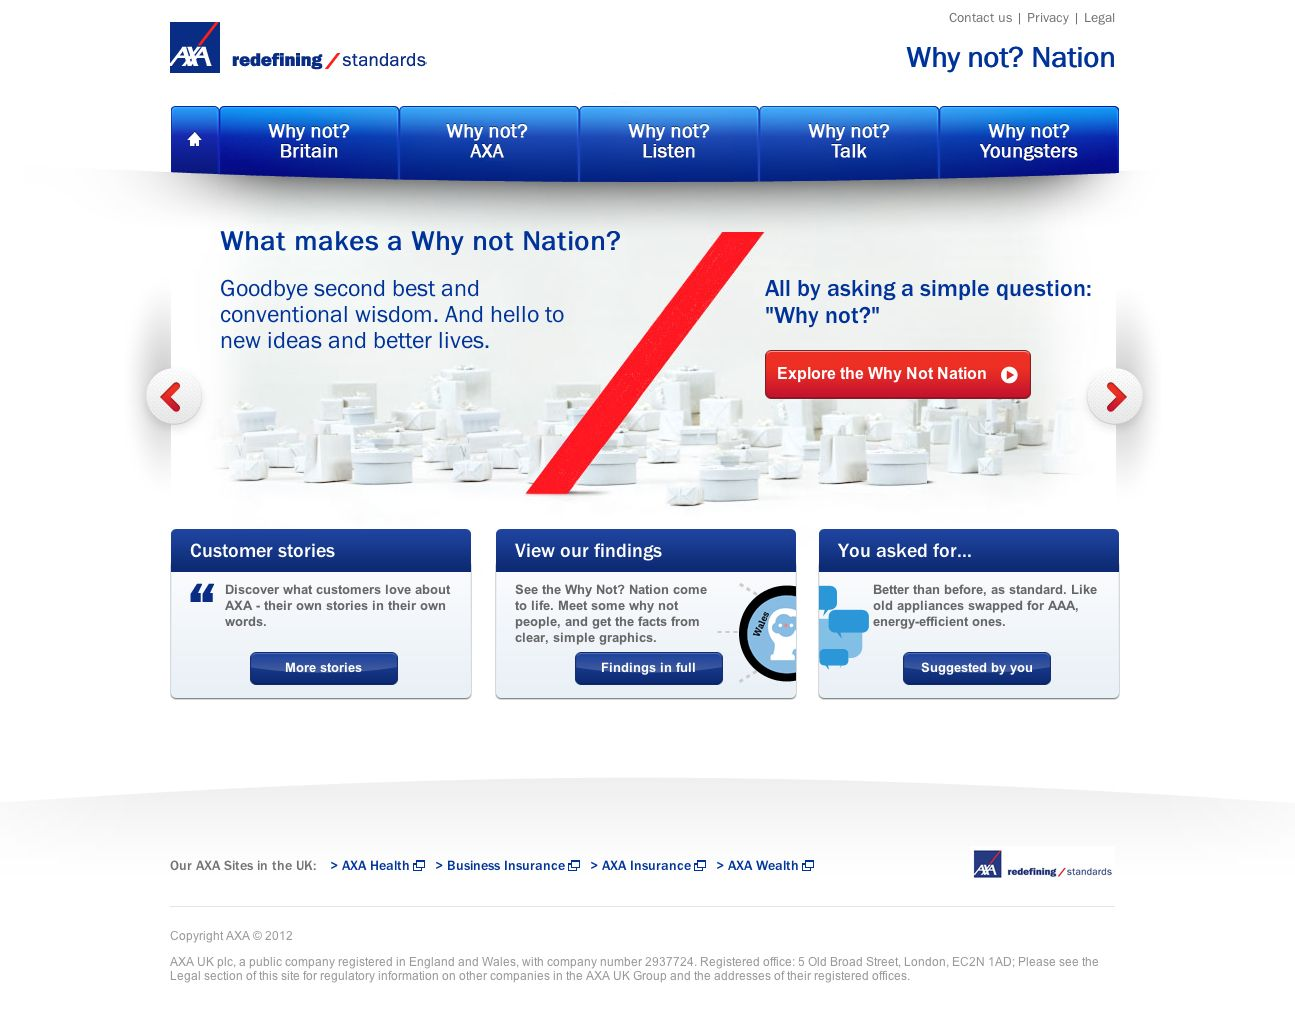 Axa Why Not Building The Why Not Nation The New Axa Uk Why Not Campaign Microsite And Digital Materials